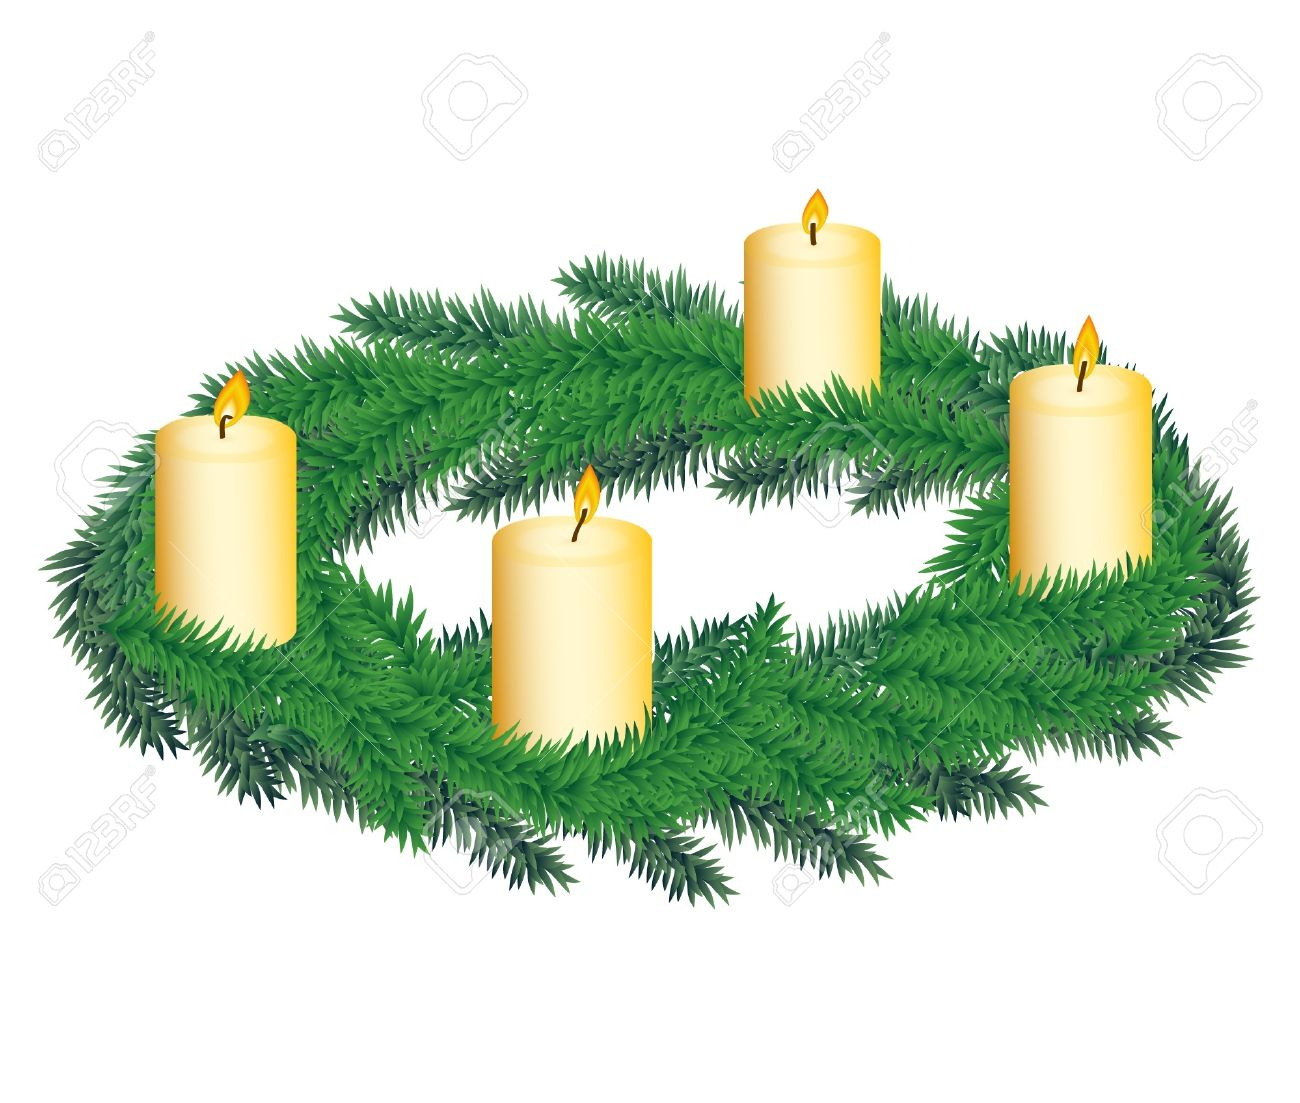 hight resolution of advent wreath with four candles stock vector 11533286